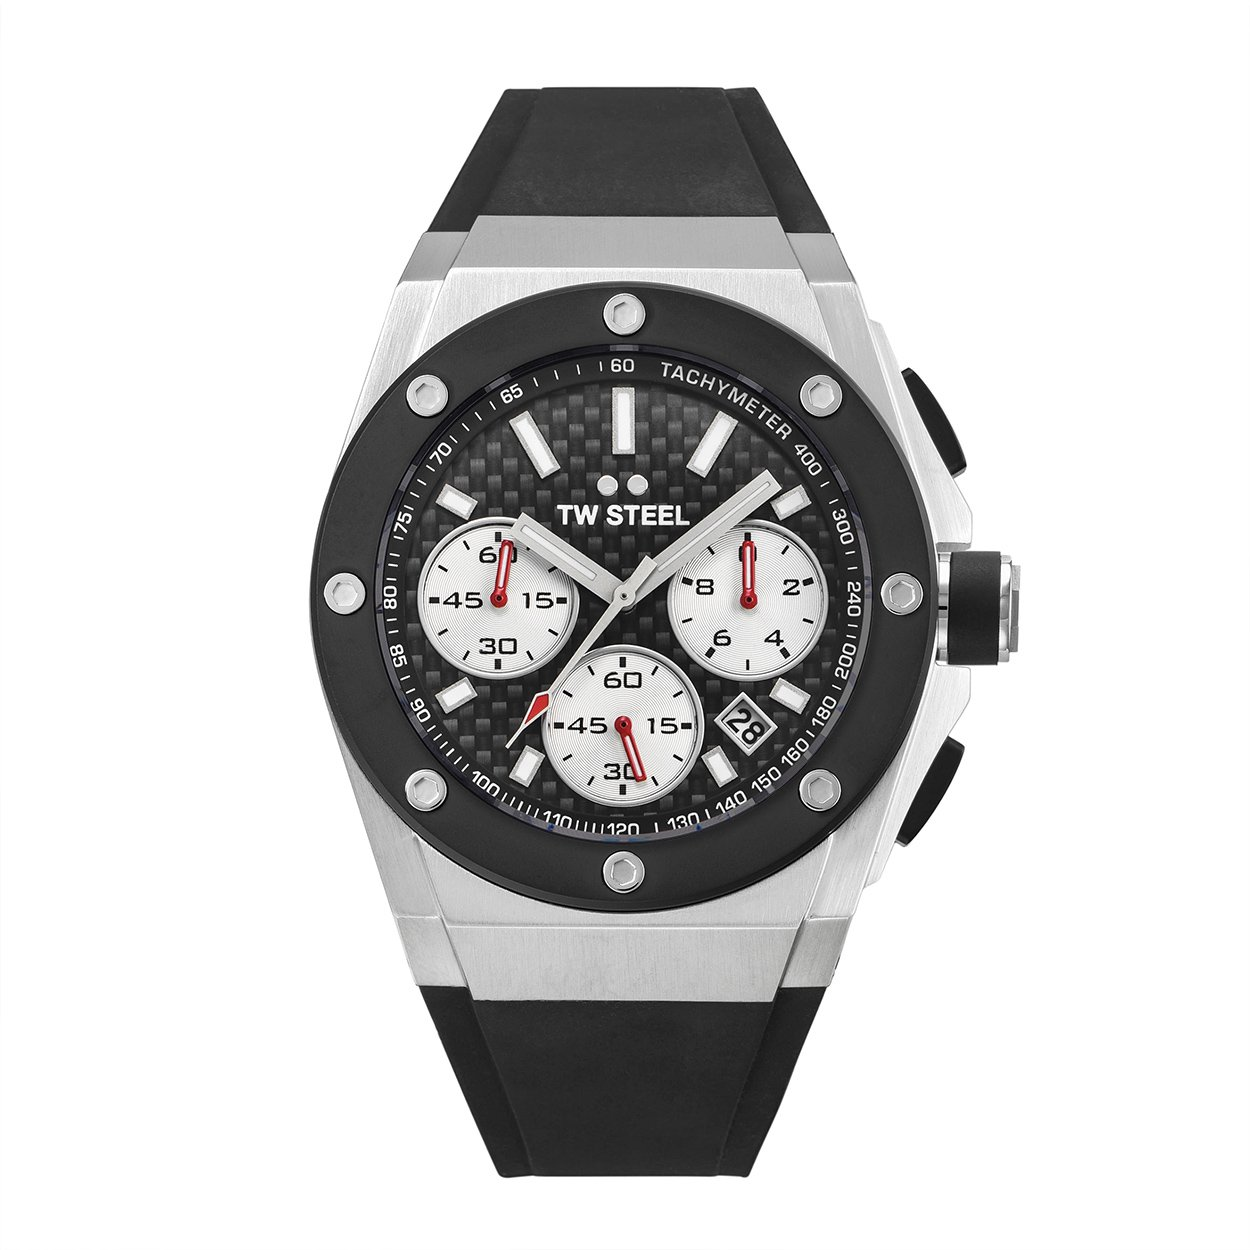 TW Steel Men s CEO Tech Stainless Steel Quartz Watch with Silicone Strap, Black, 30 Model CE4019